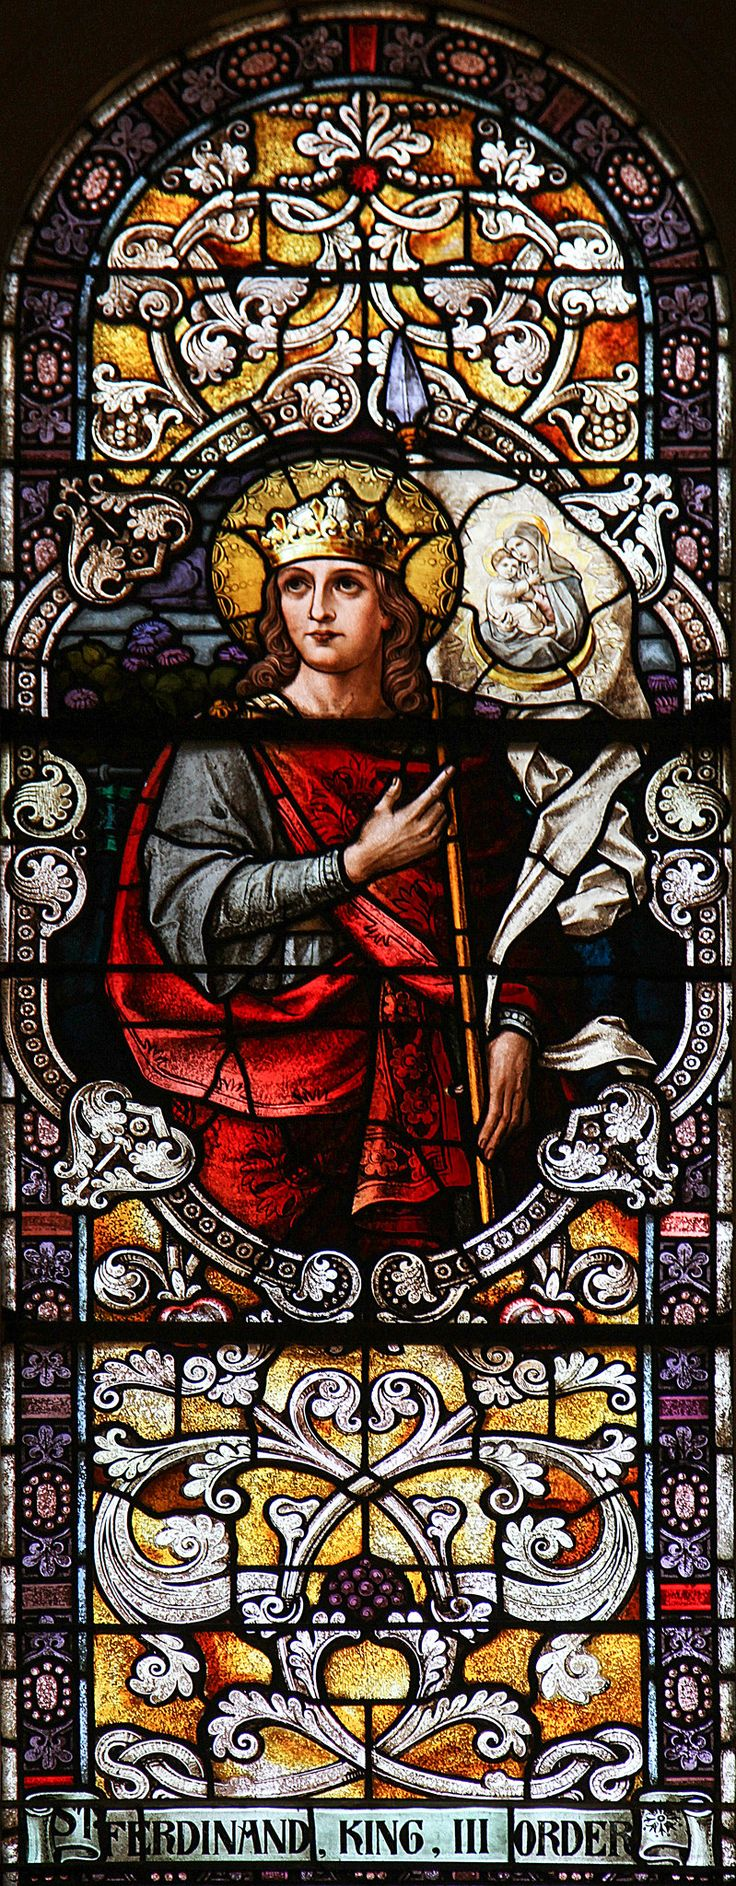 St Ferdinand III of Castile // This stained glass window of the saint is in the Franciscan Monastery in Washington DC.// Photo: Lawrence OP // Between 1234-36, Ferdinand conquered the city of Cordoba from the Moors. Queen Beatrice died in 1236, and he liberated the city of Seville from its Muslim occupiers on this day (23 November) in 1248. He rebuilt the Cathedral of Burgos and revitalised the University of Salamanca.